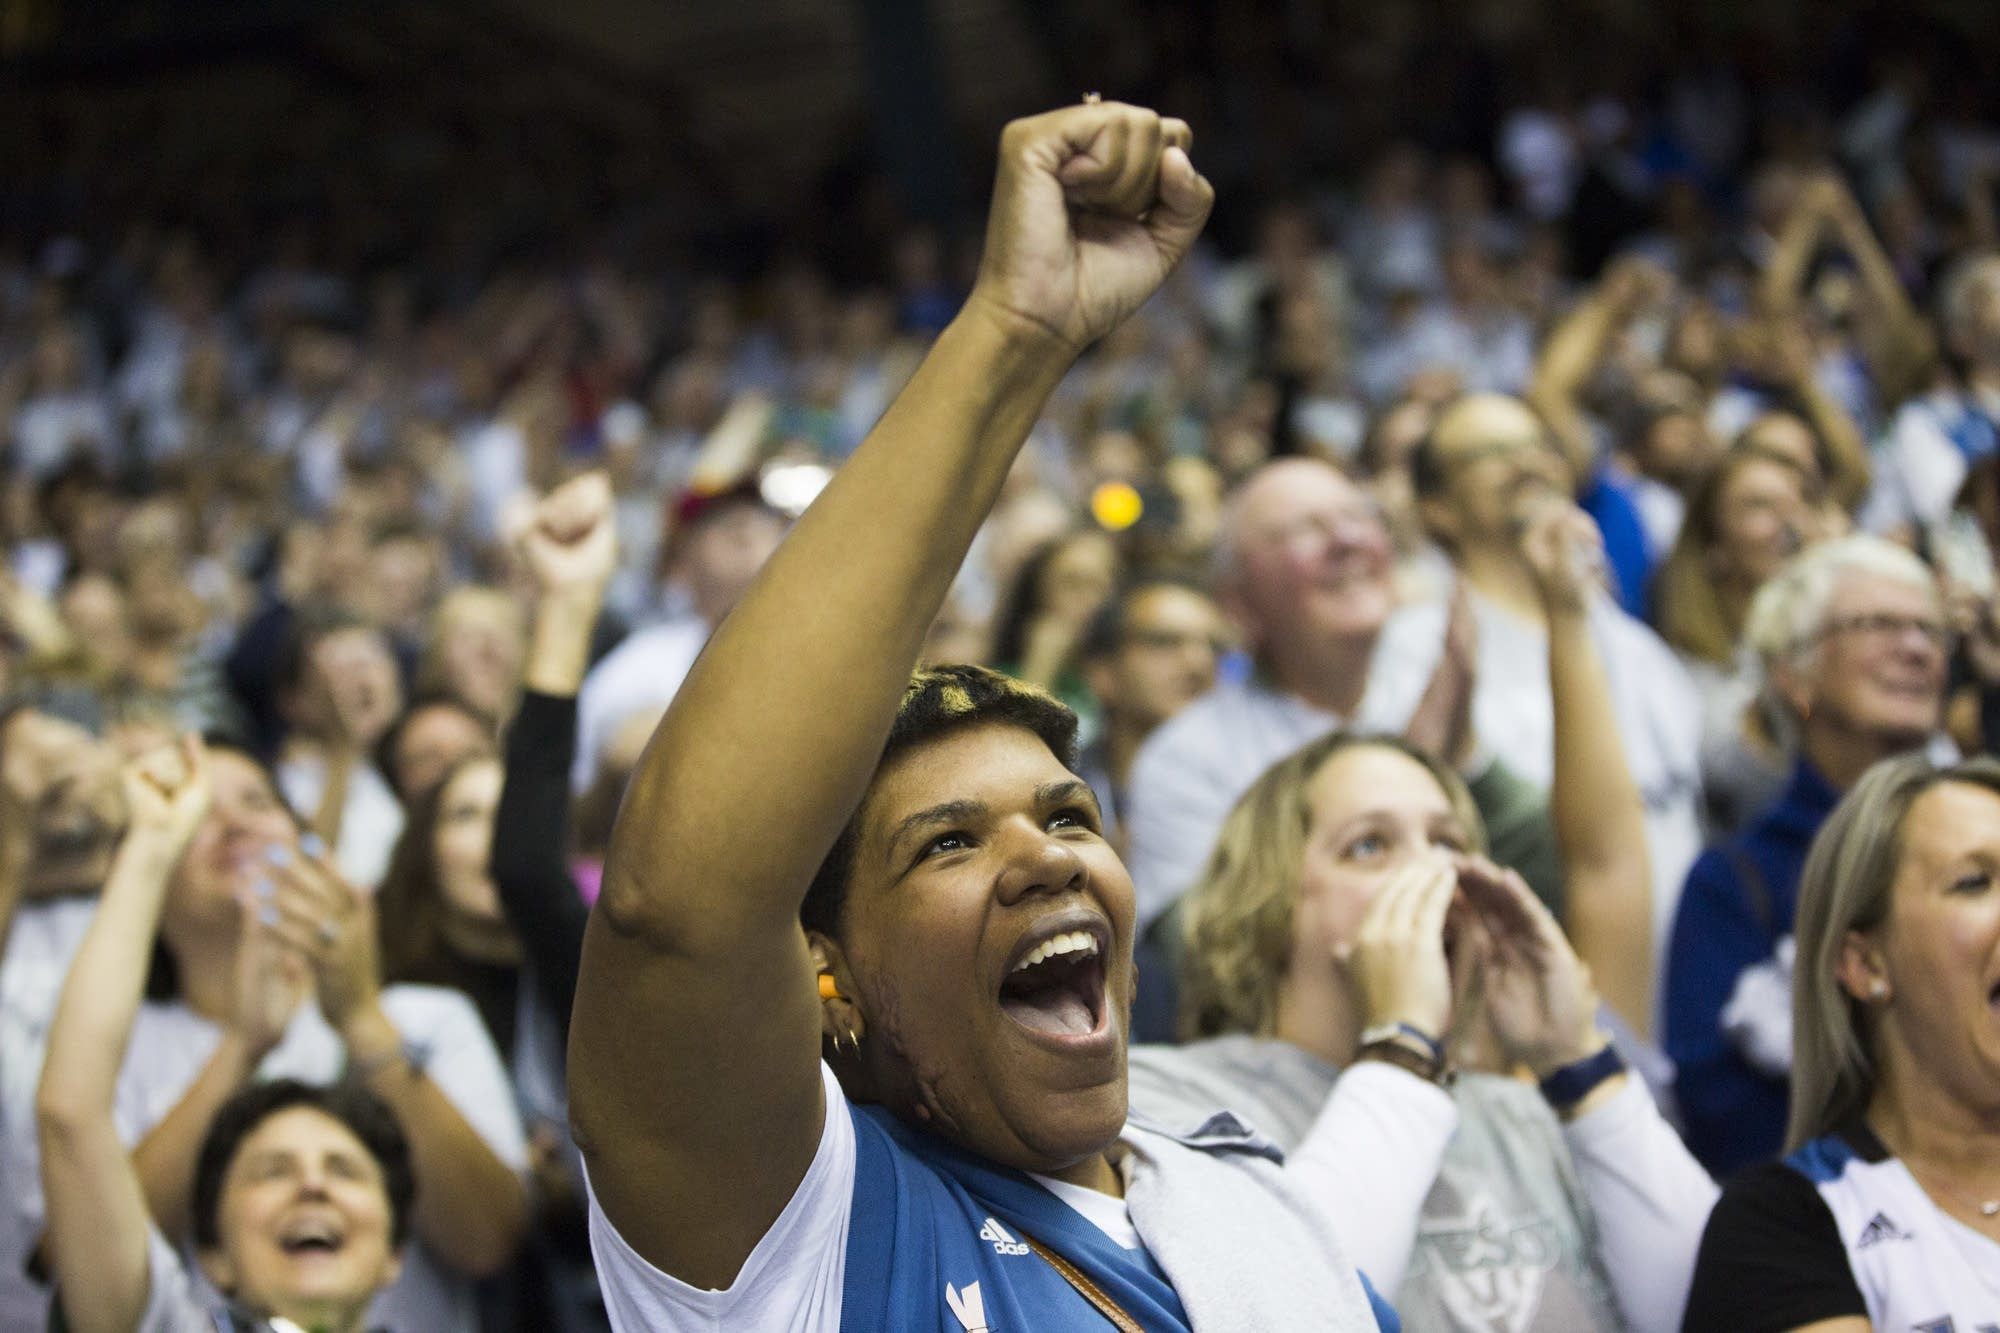 Terry McFarland and other Lynx fans celebrate their win.